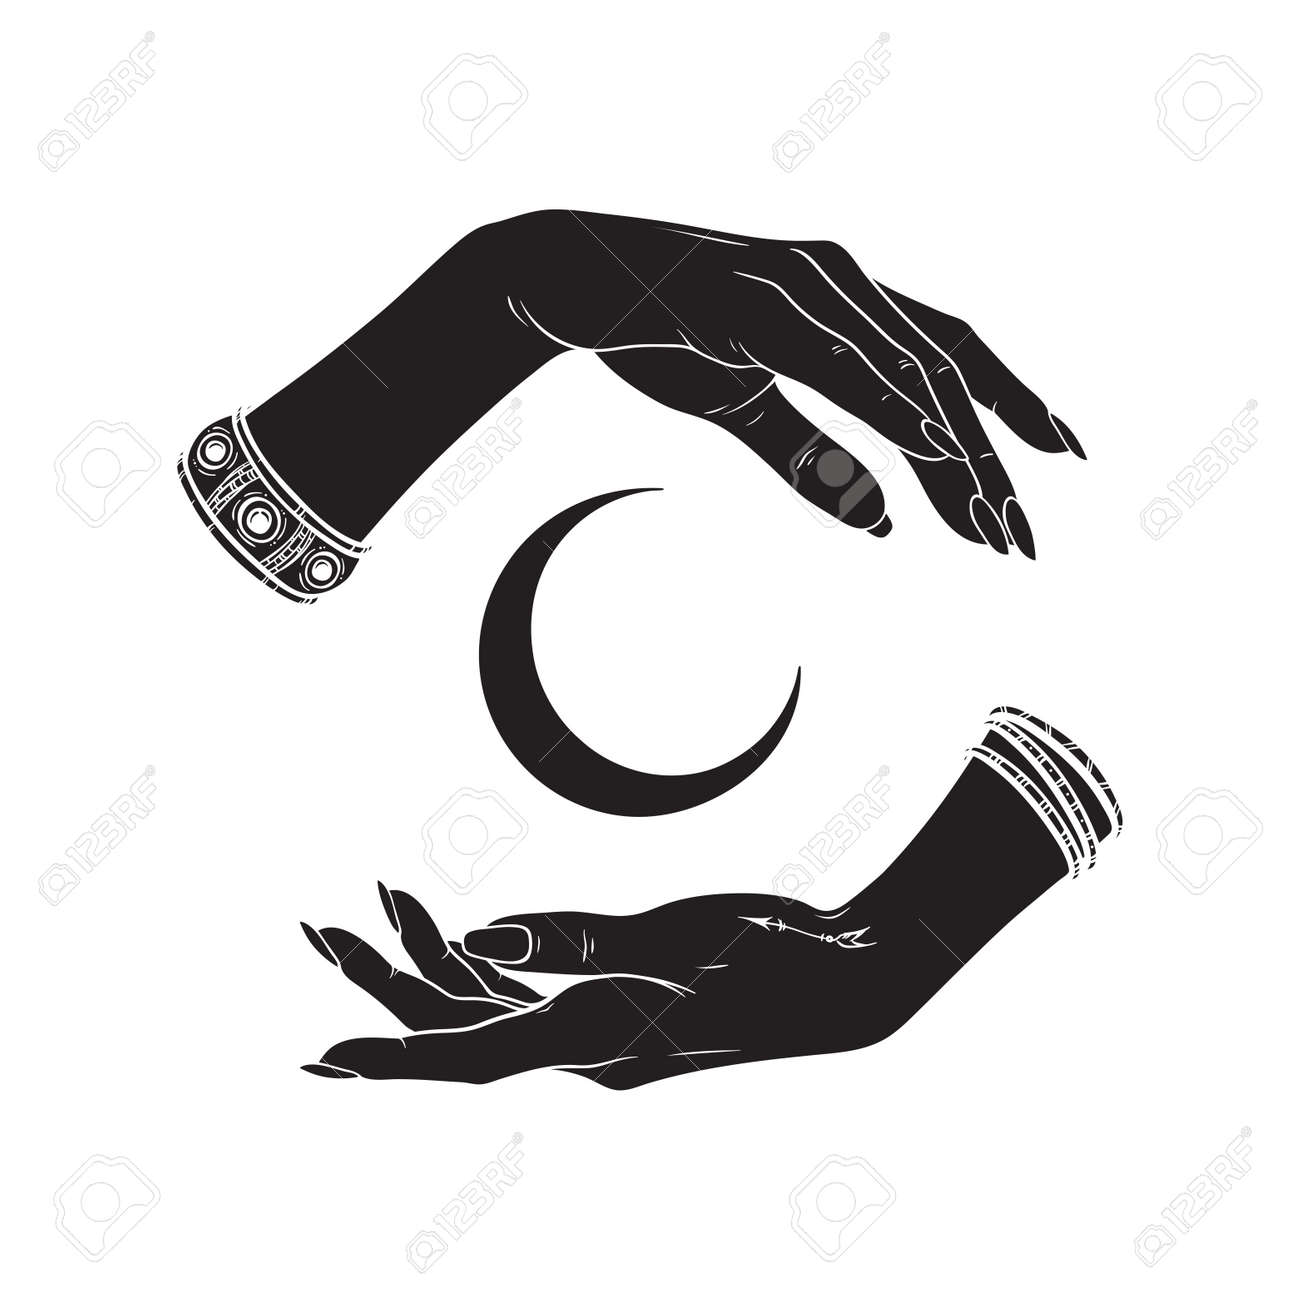 Hand drawn female witch hands holding crescent moon. Flash tattoo, sticker, patch or print design vector illustration - 172905459